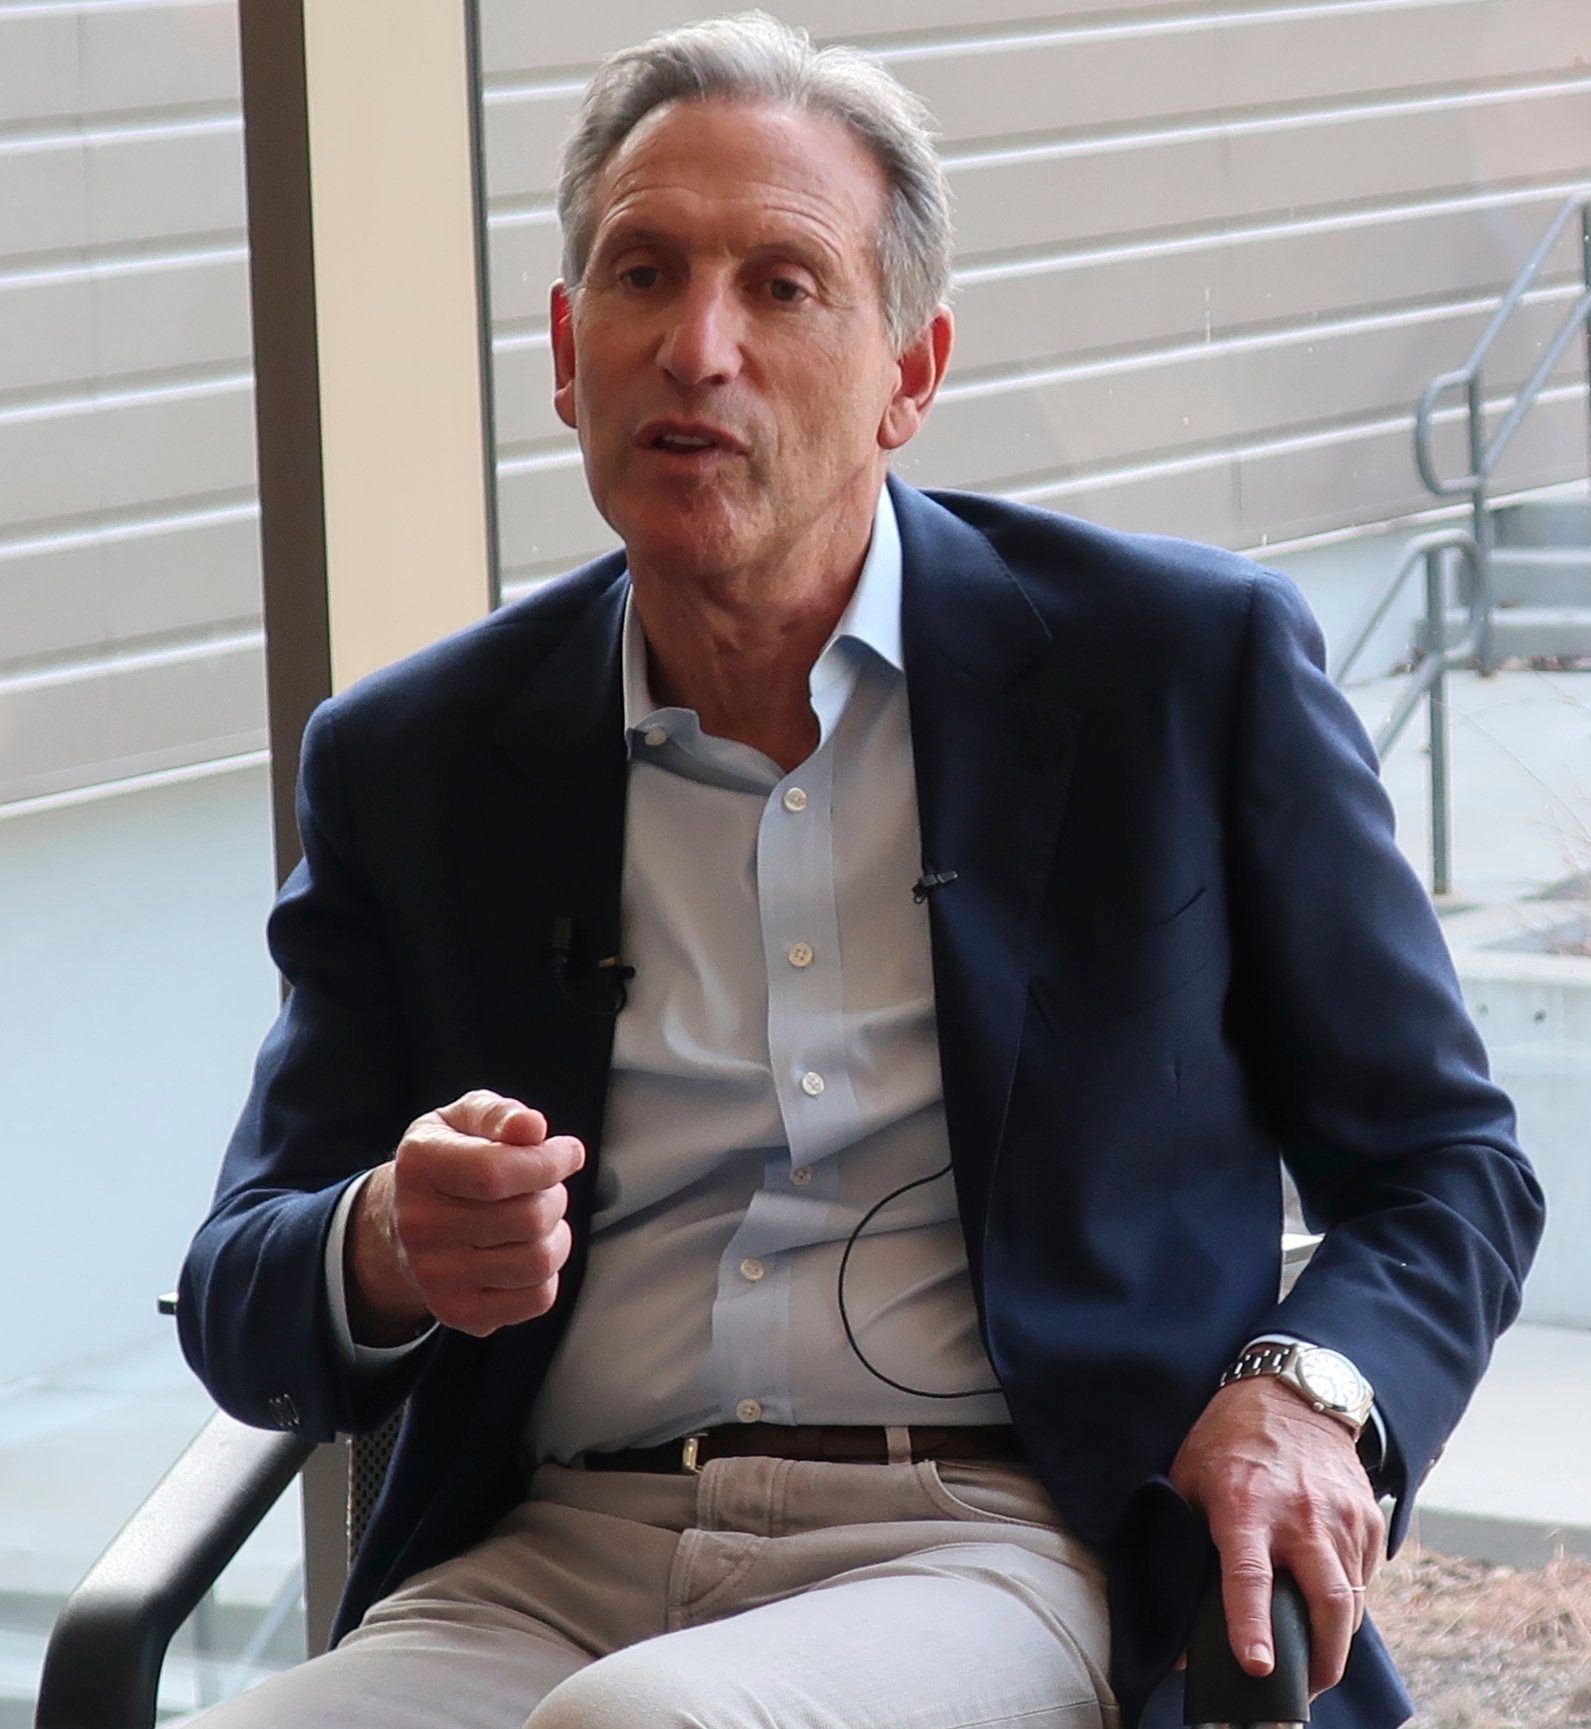 Former Starbucks CEO Howard Schultz, center, speaks about the possibility that he'll run for president as an independent candidate during a town hall meeting on the University of Kansas campus in Lawrence, Kansas. Schultz believes he would take much of his support from disaffected Republicans. (AP Photo/John Hanna)